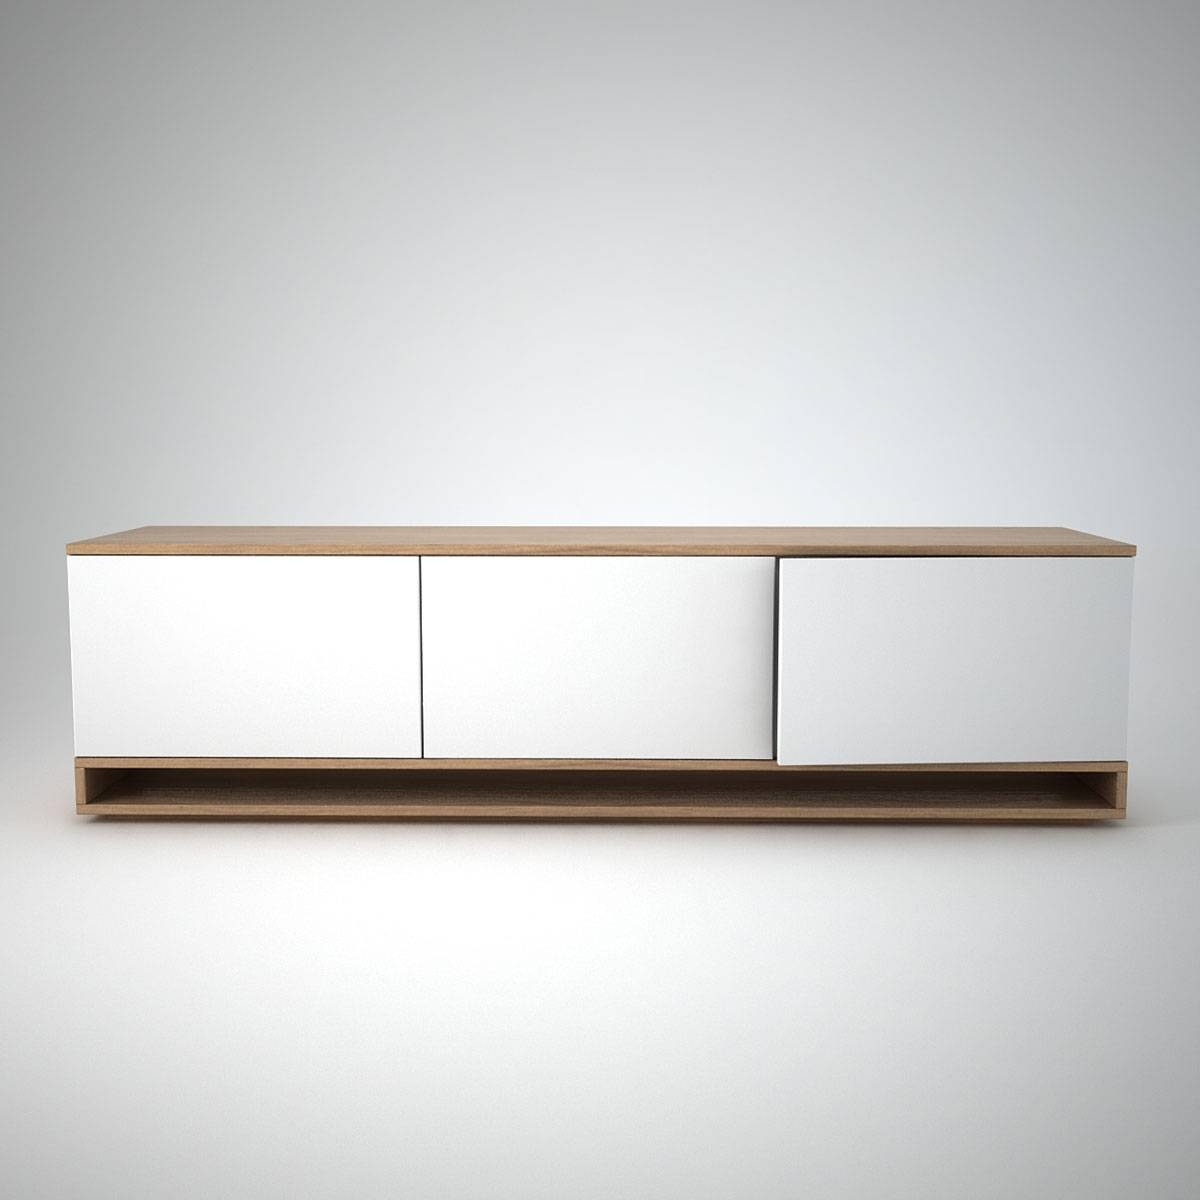 Harlem Low Sideboard (3) White - Join Furniture pertaining to White Contemporary Sideboards (Image 12 of 30)